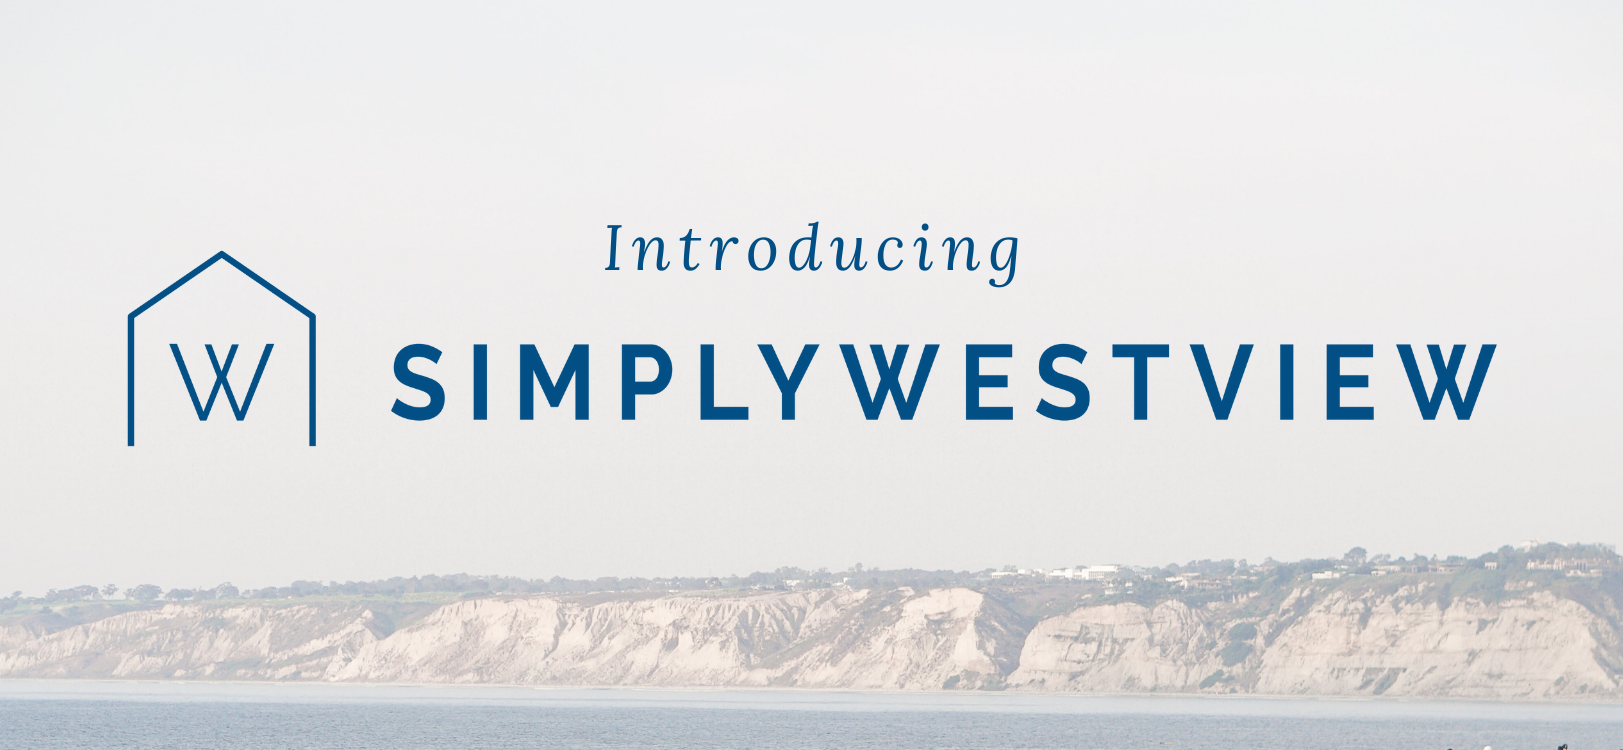 Introducing Simply Westview